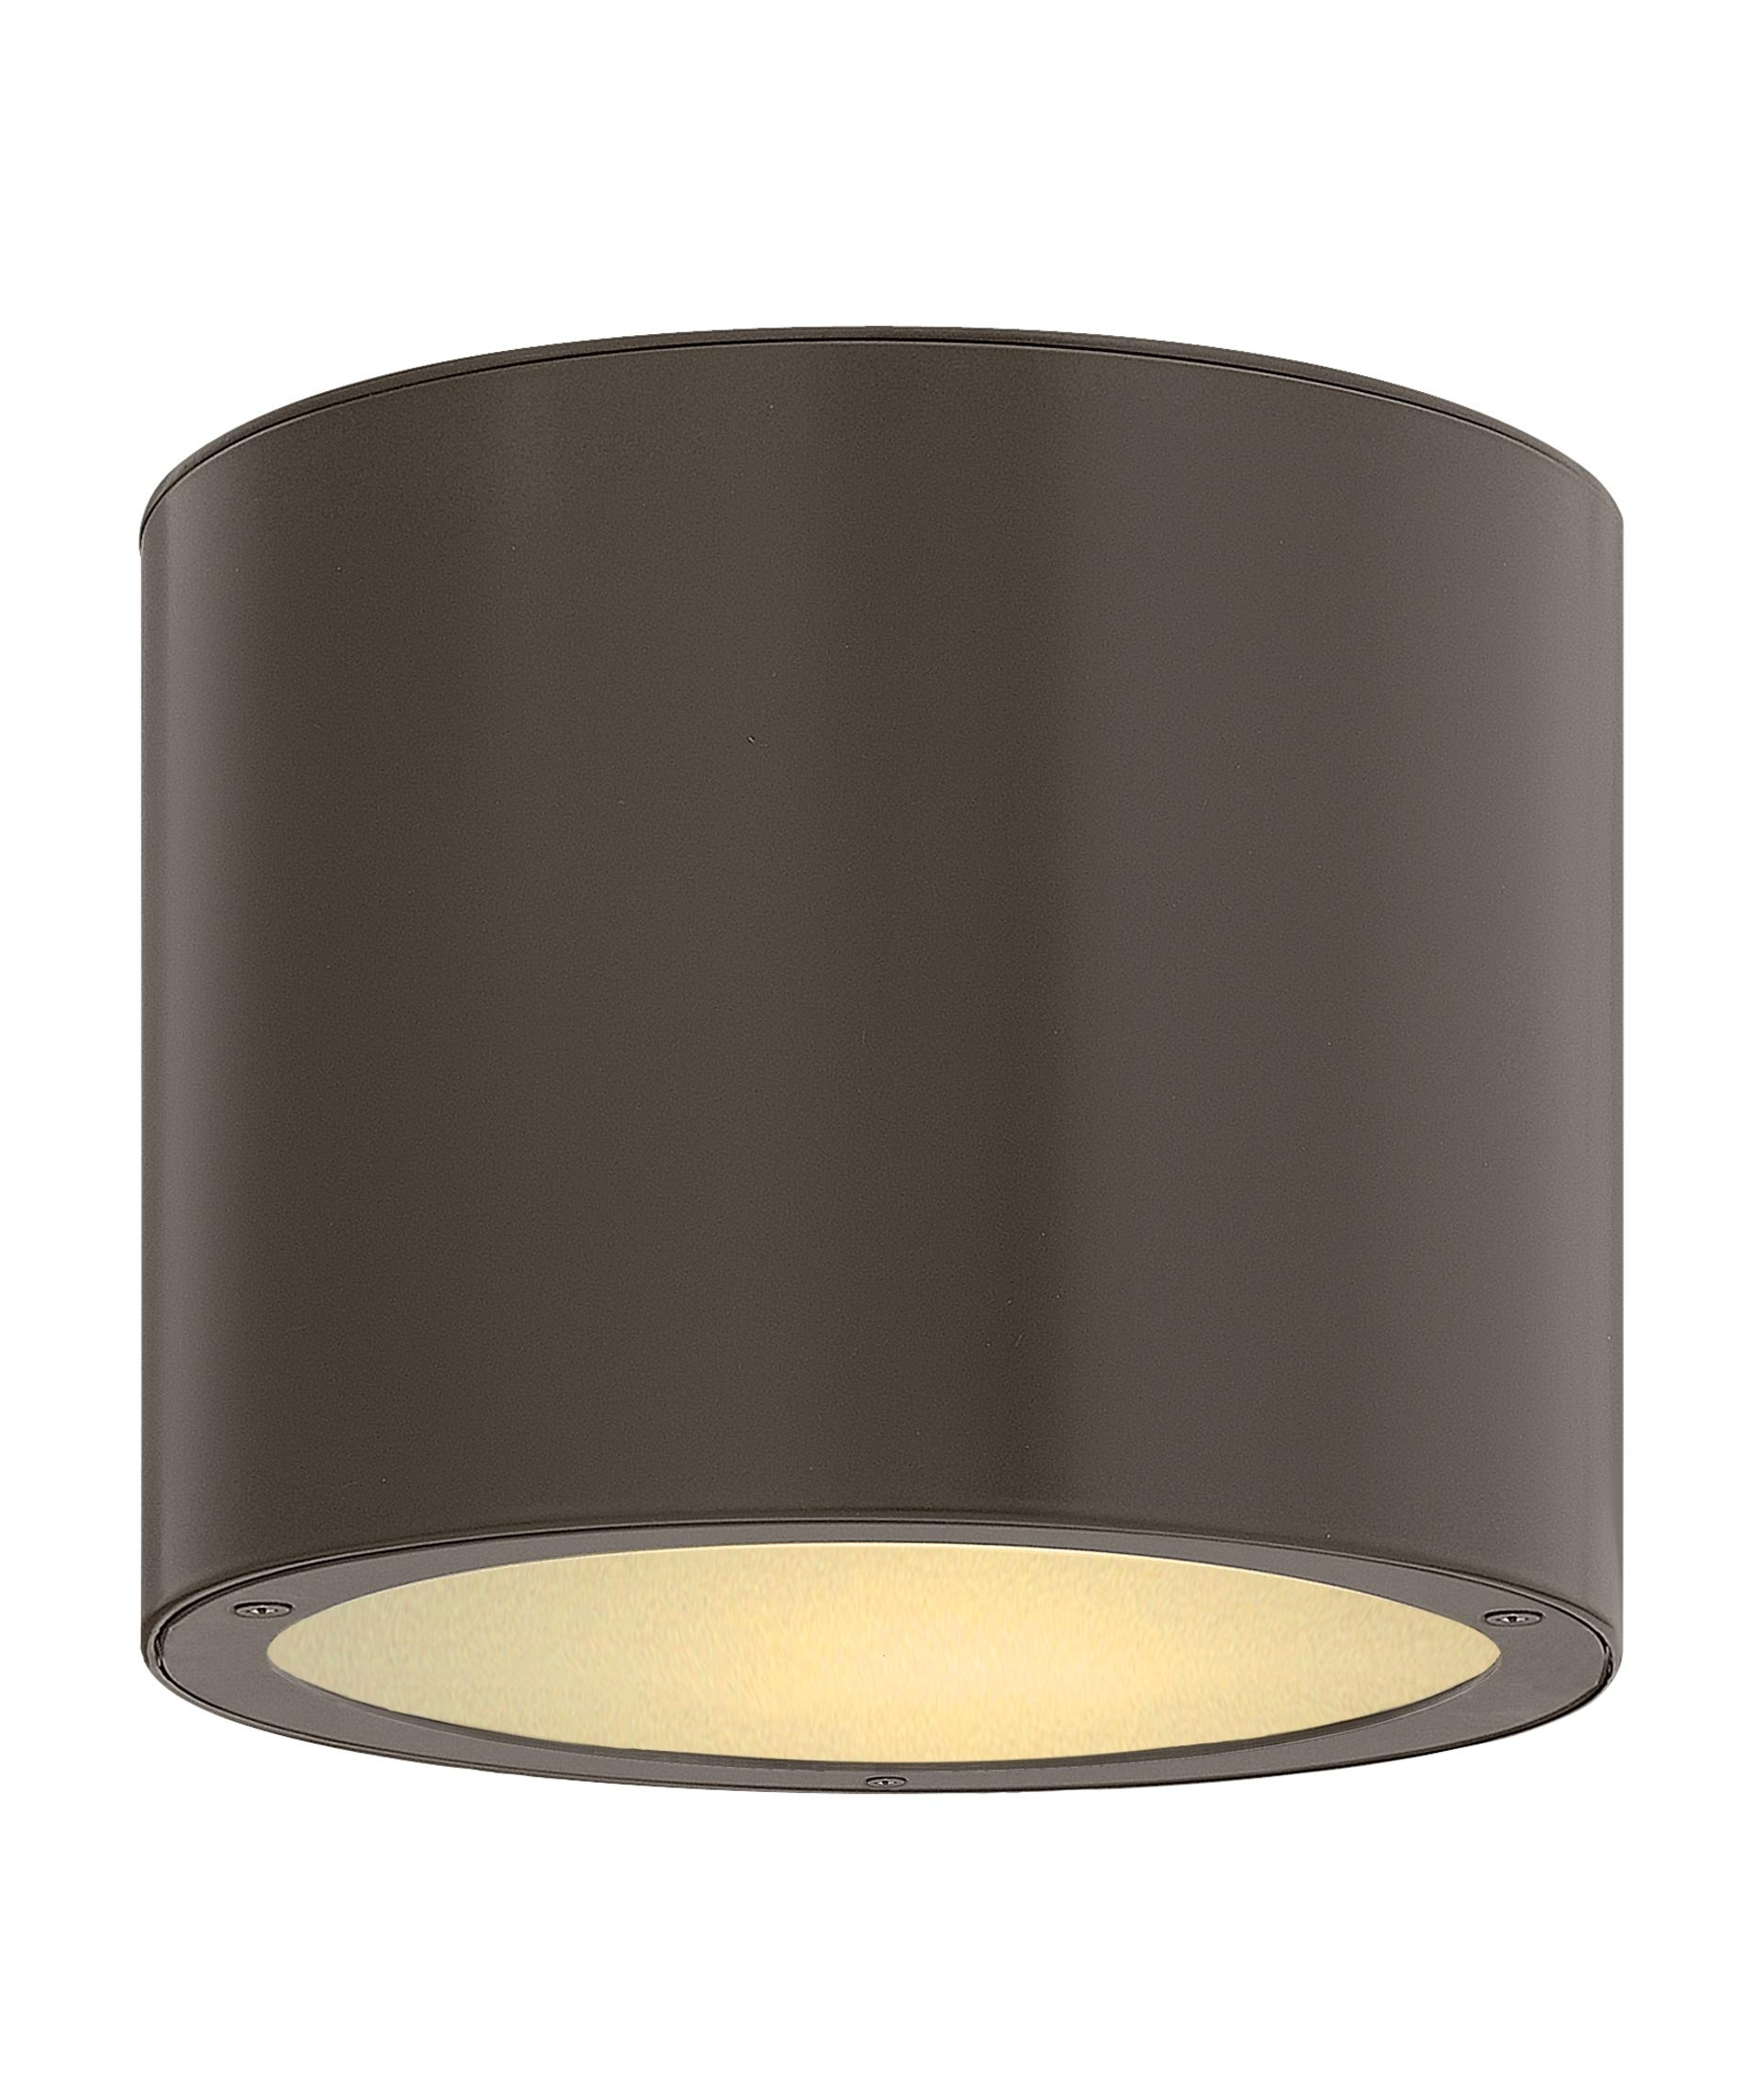 Hinkley Lighting 1663 Luna 8 Inch Wide 1 Light Outdoor Flush Mount Inside Favorite Outdoor Ceiling Lighting Fixtures (View 16 of 20)